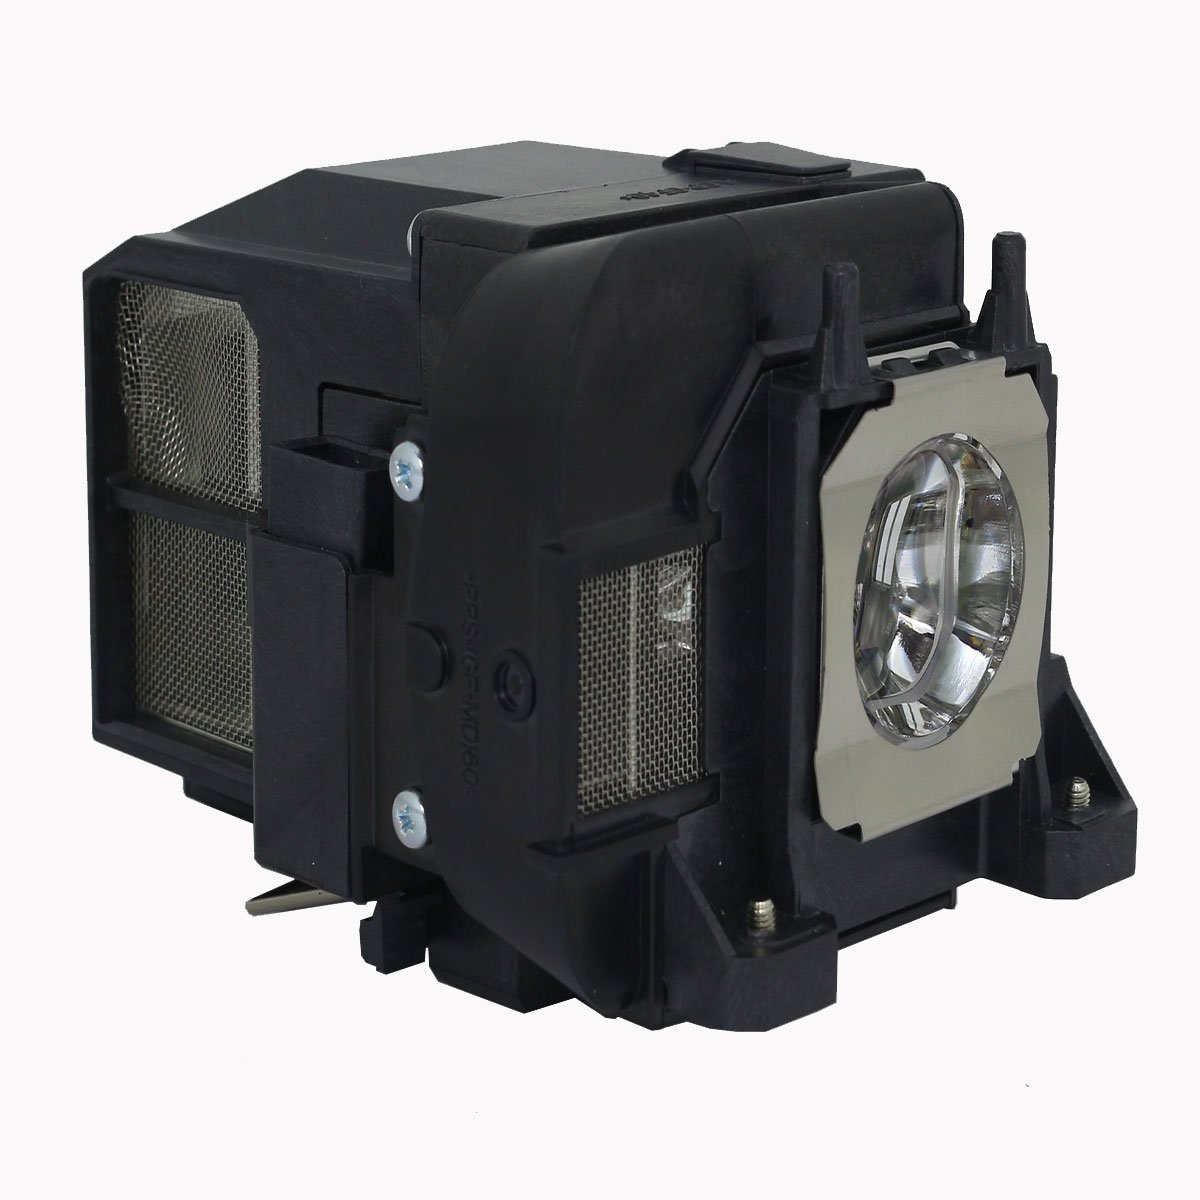 Ceybo PowerLite Home Cinema 1440 Lamp//Bulb Replacement with Housing for Epson Projector